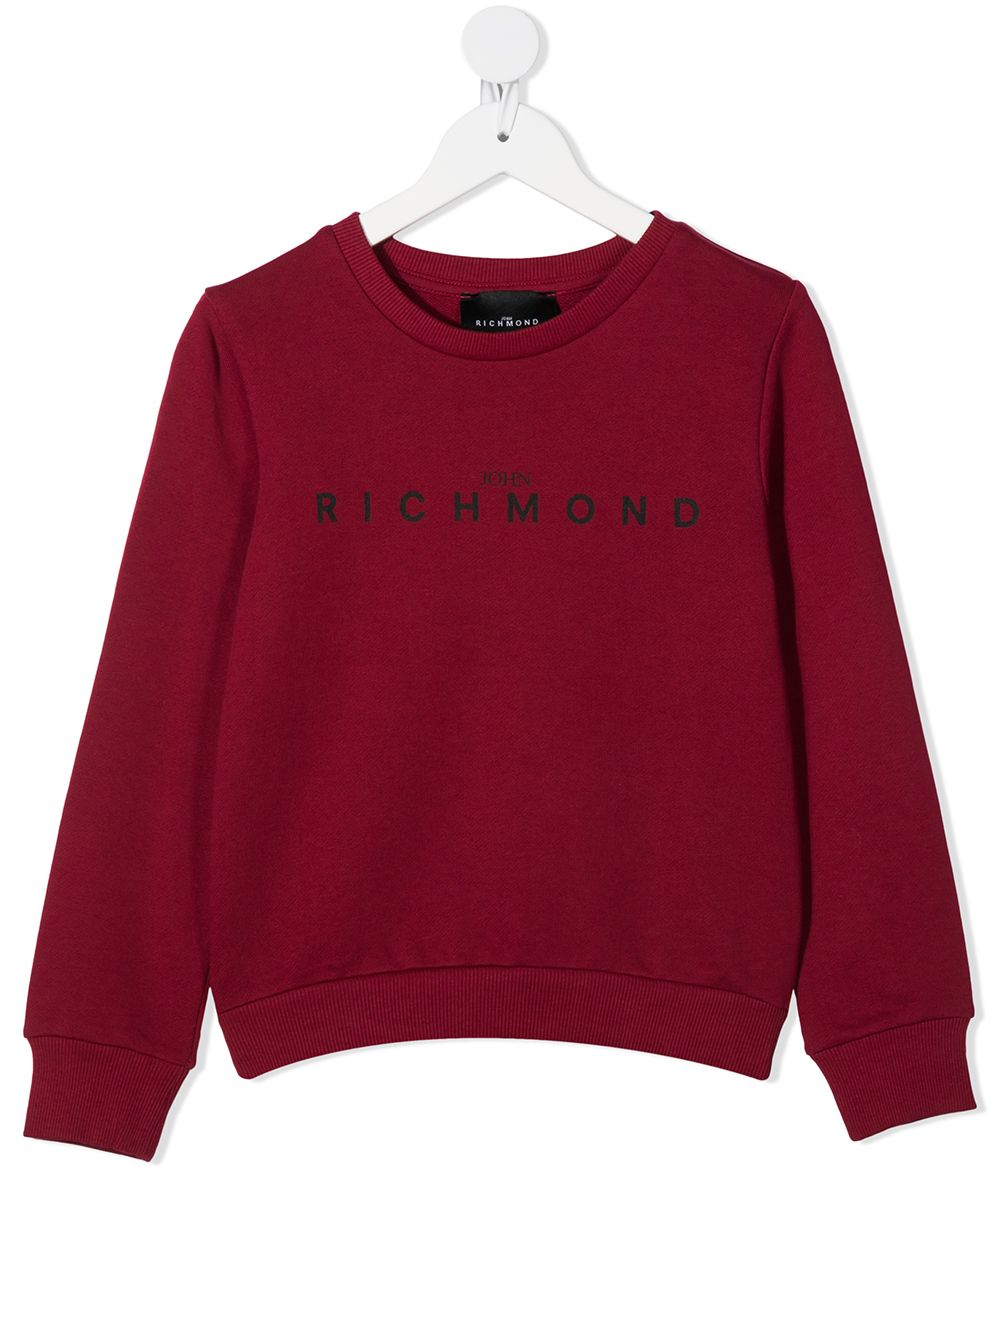 john richmond | Sweatshirt | RBA20005FET5W0568